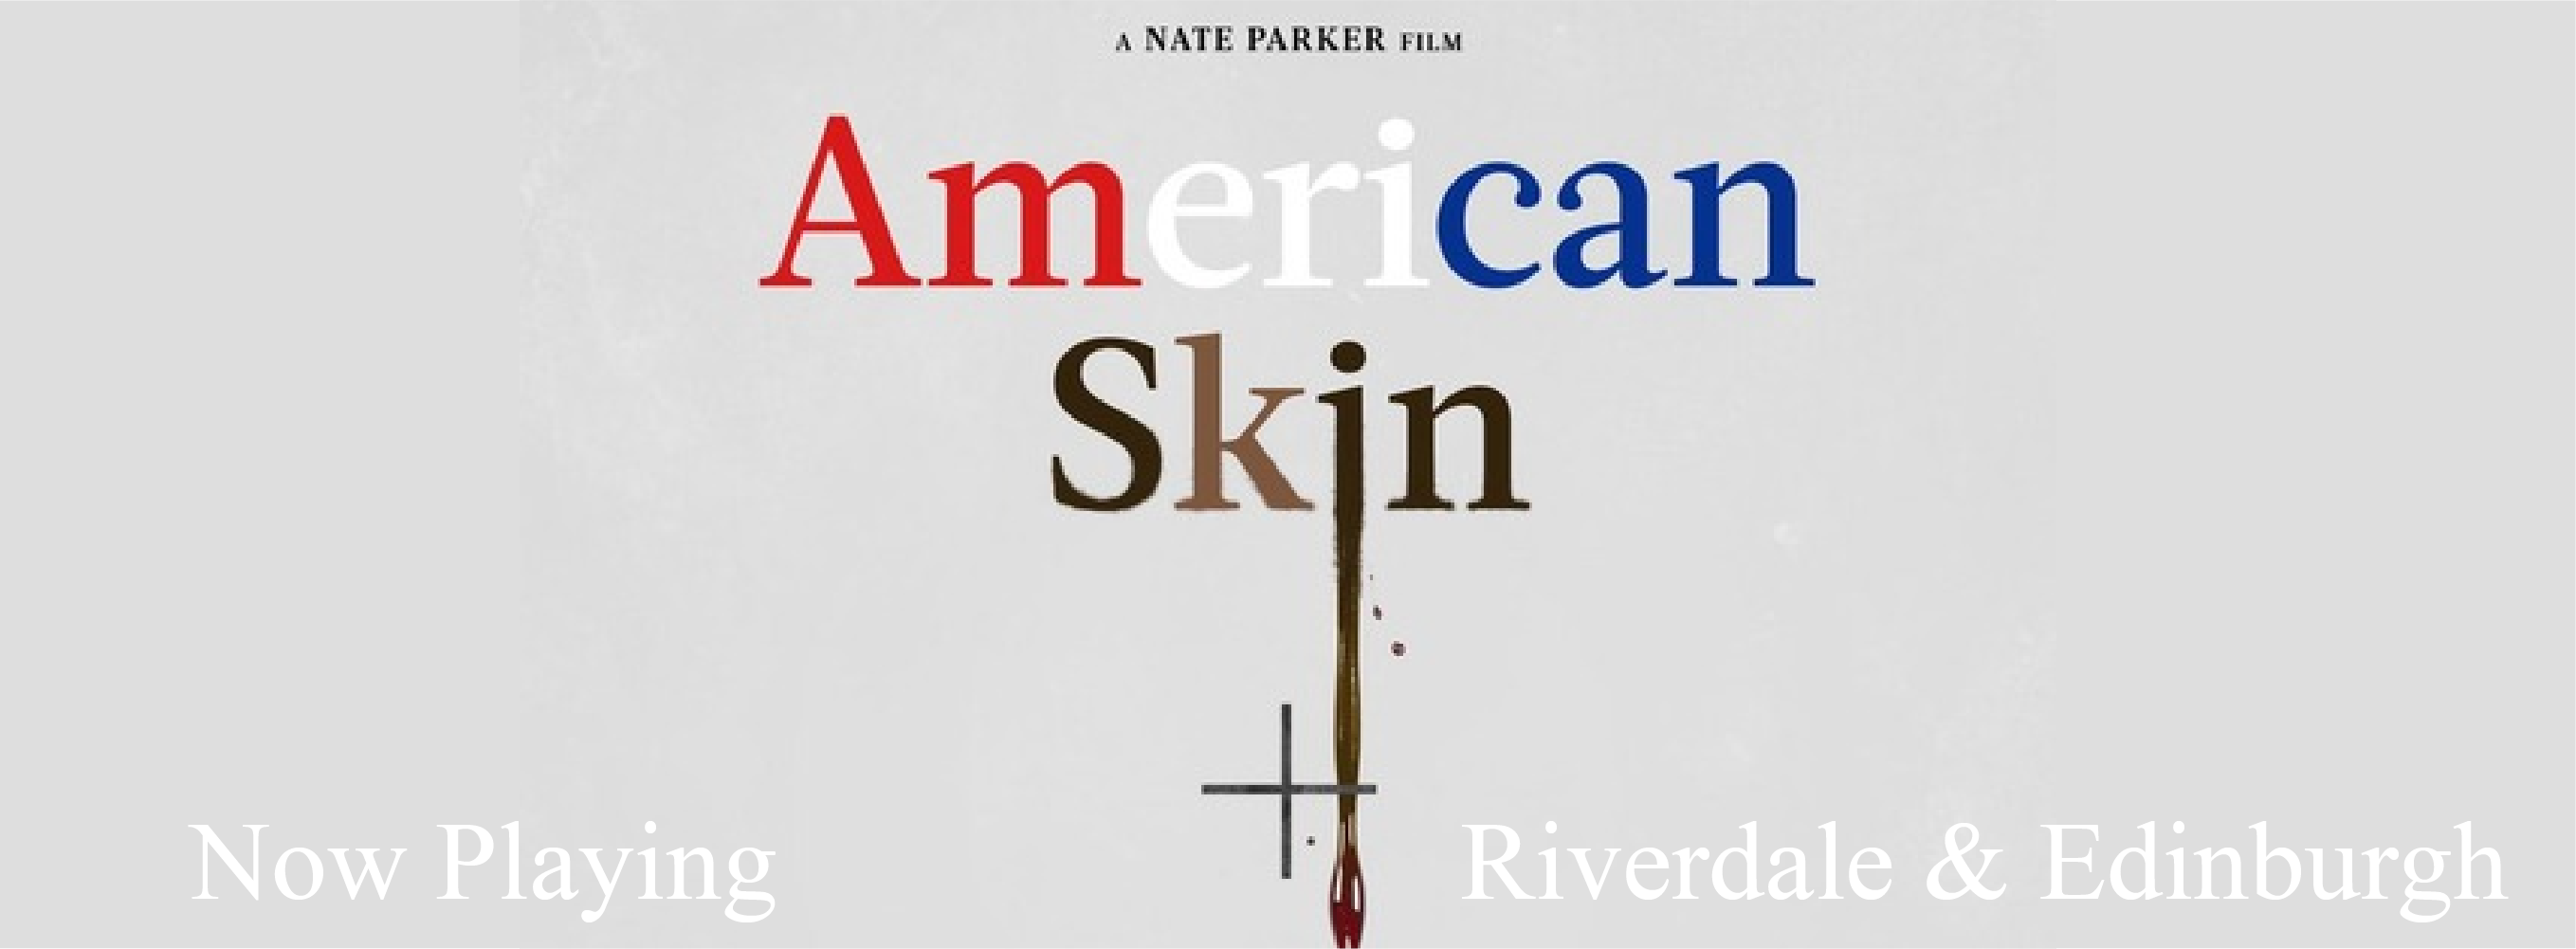 Get tickets to American Skin now playing